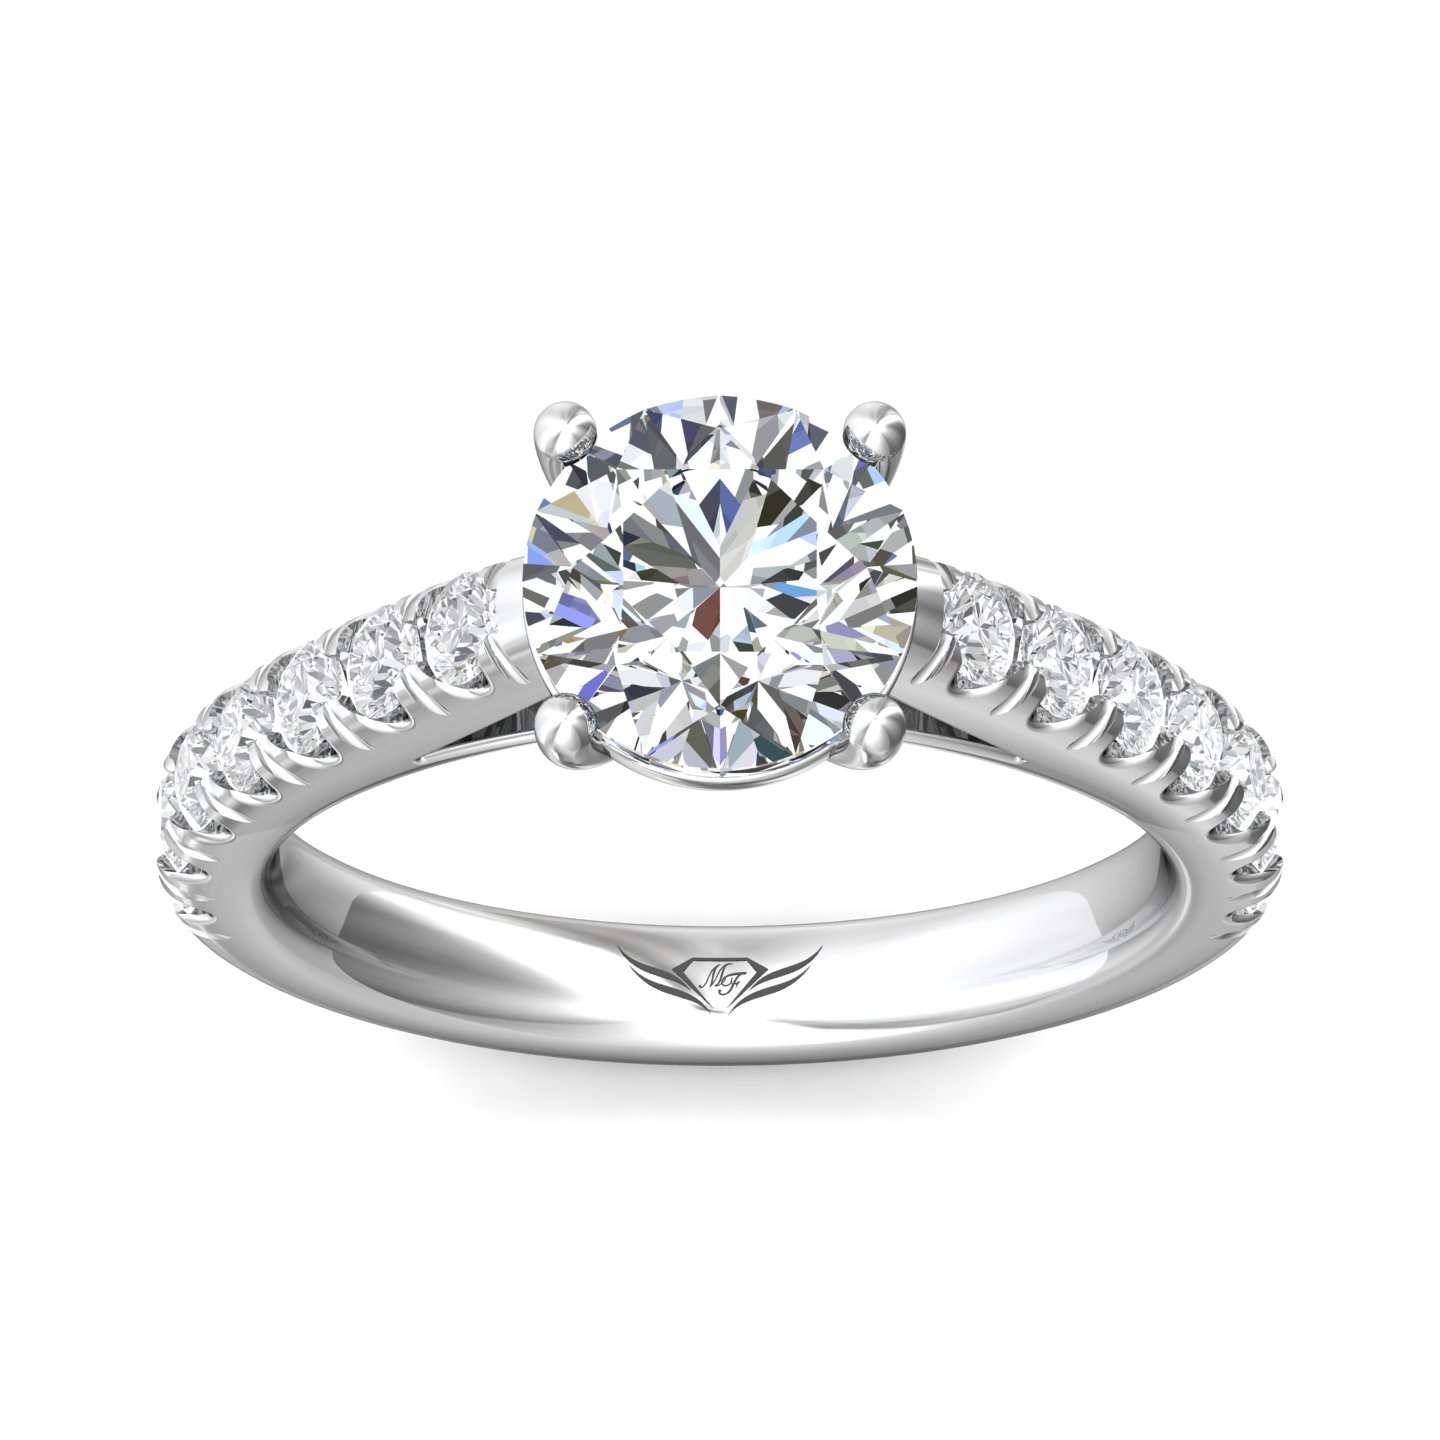 Rings - 14K White Gold FlyerFit Micropave Engagement Ring - image 3